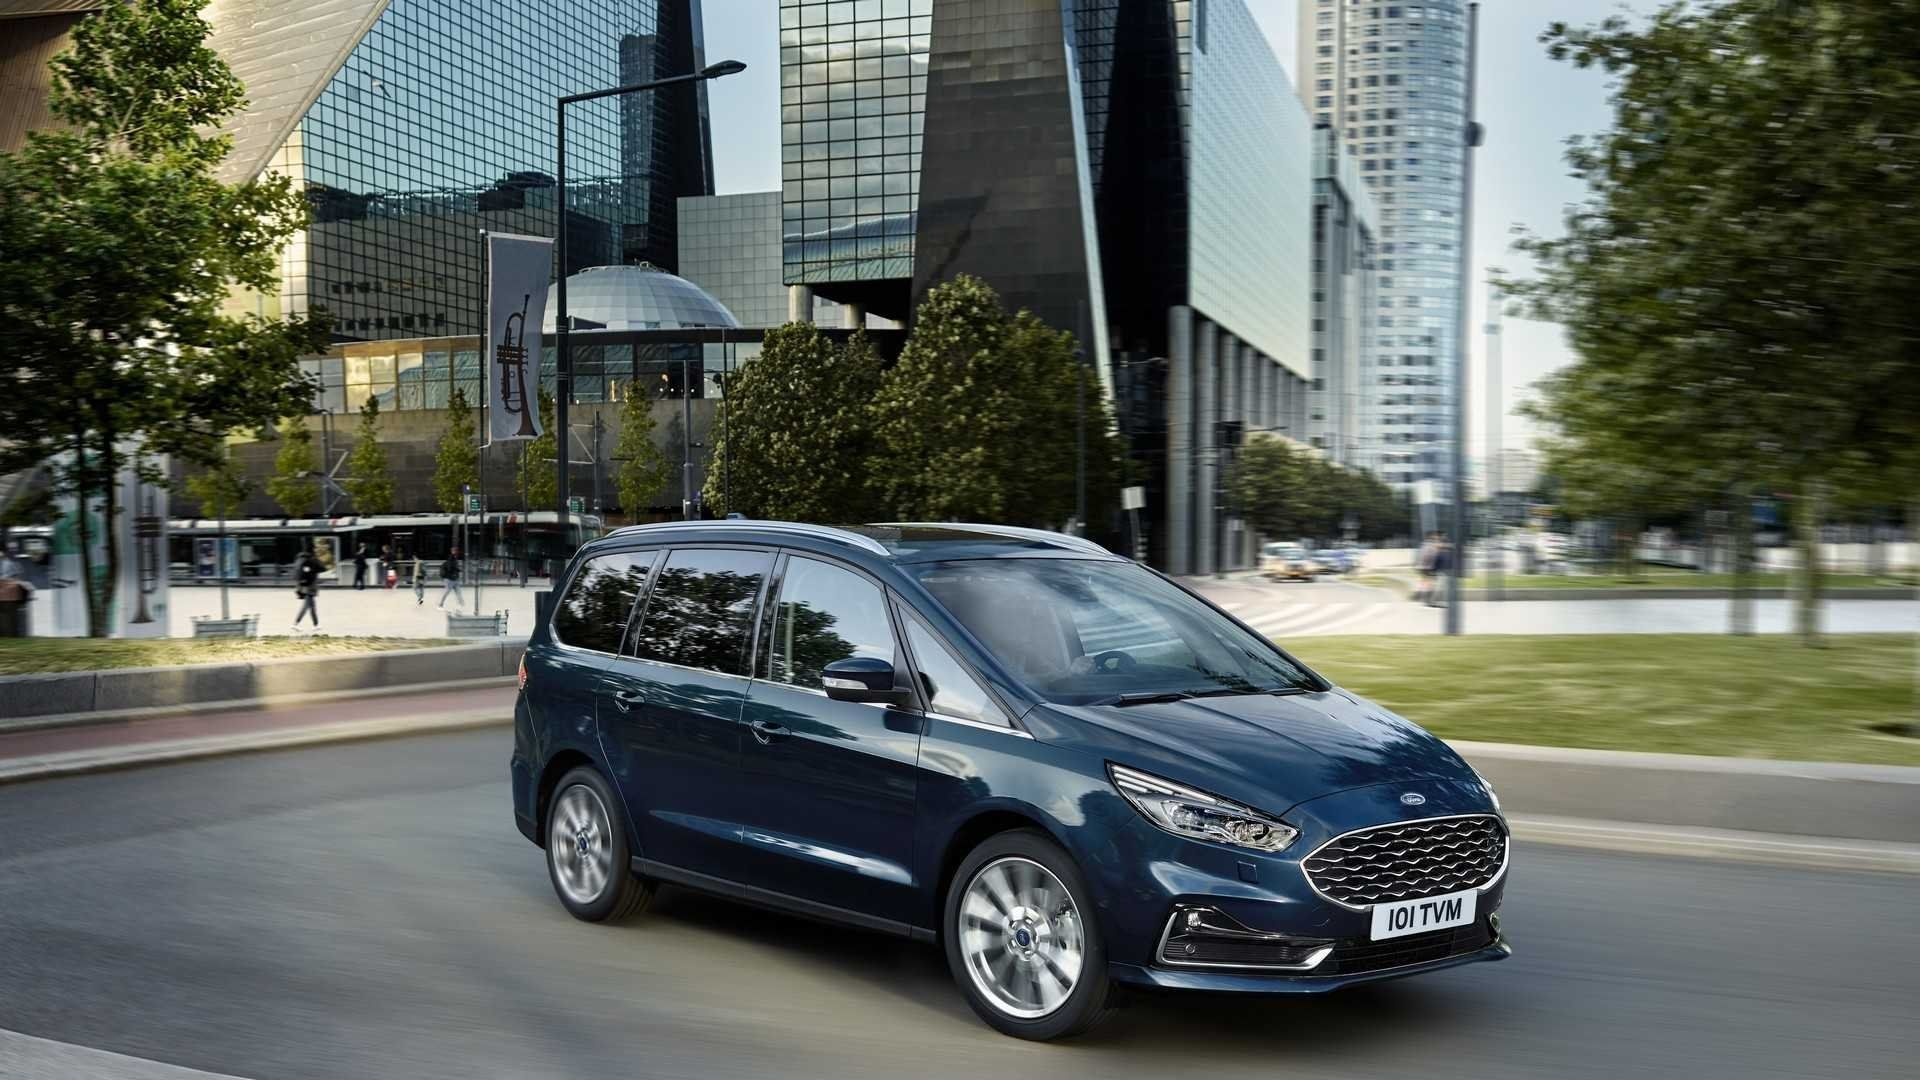 2021 Ford Mondeo Vignale Exterior And Interior Ford Mondeo Ford